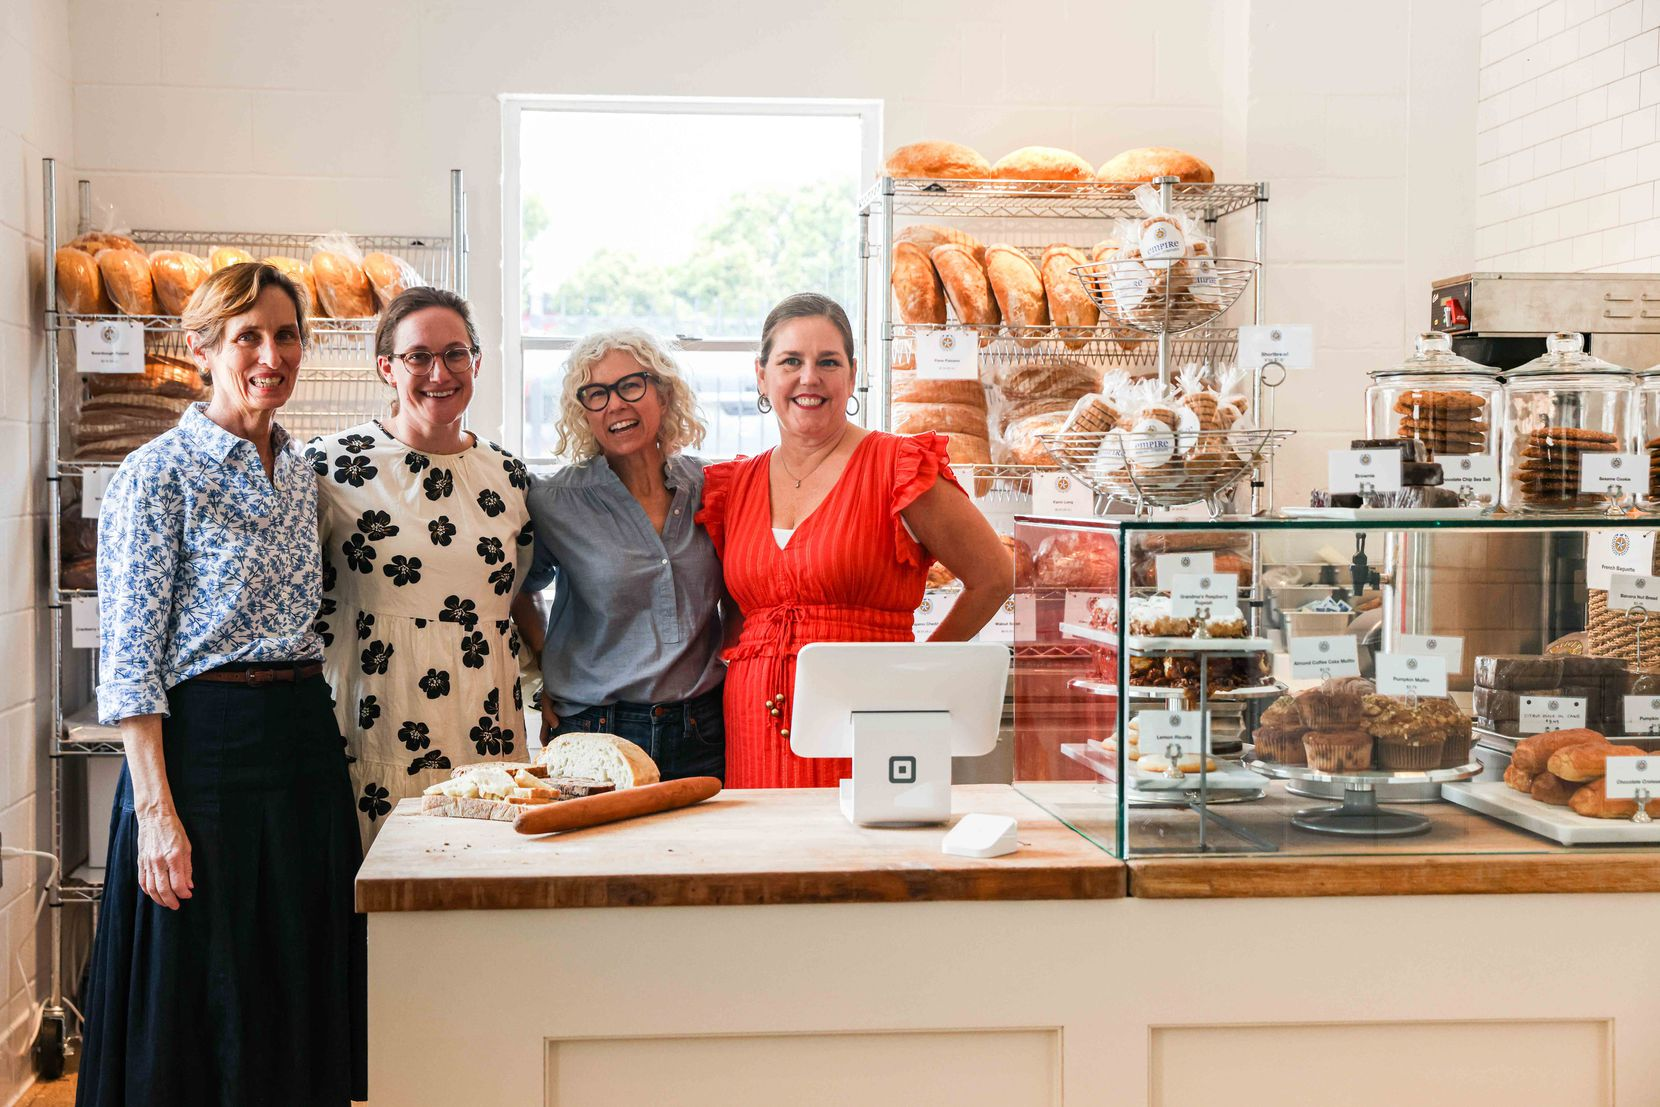 (From left) Meaders Ozarow, Emily Hartsell, Malina Pearson and Tarrie Hoffman created and operate the new Empire Baking Company.